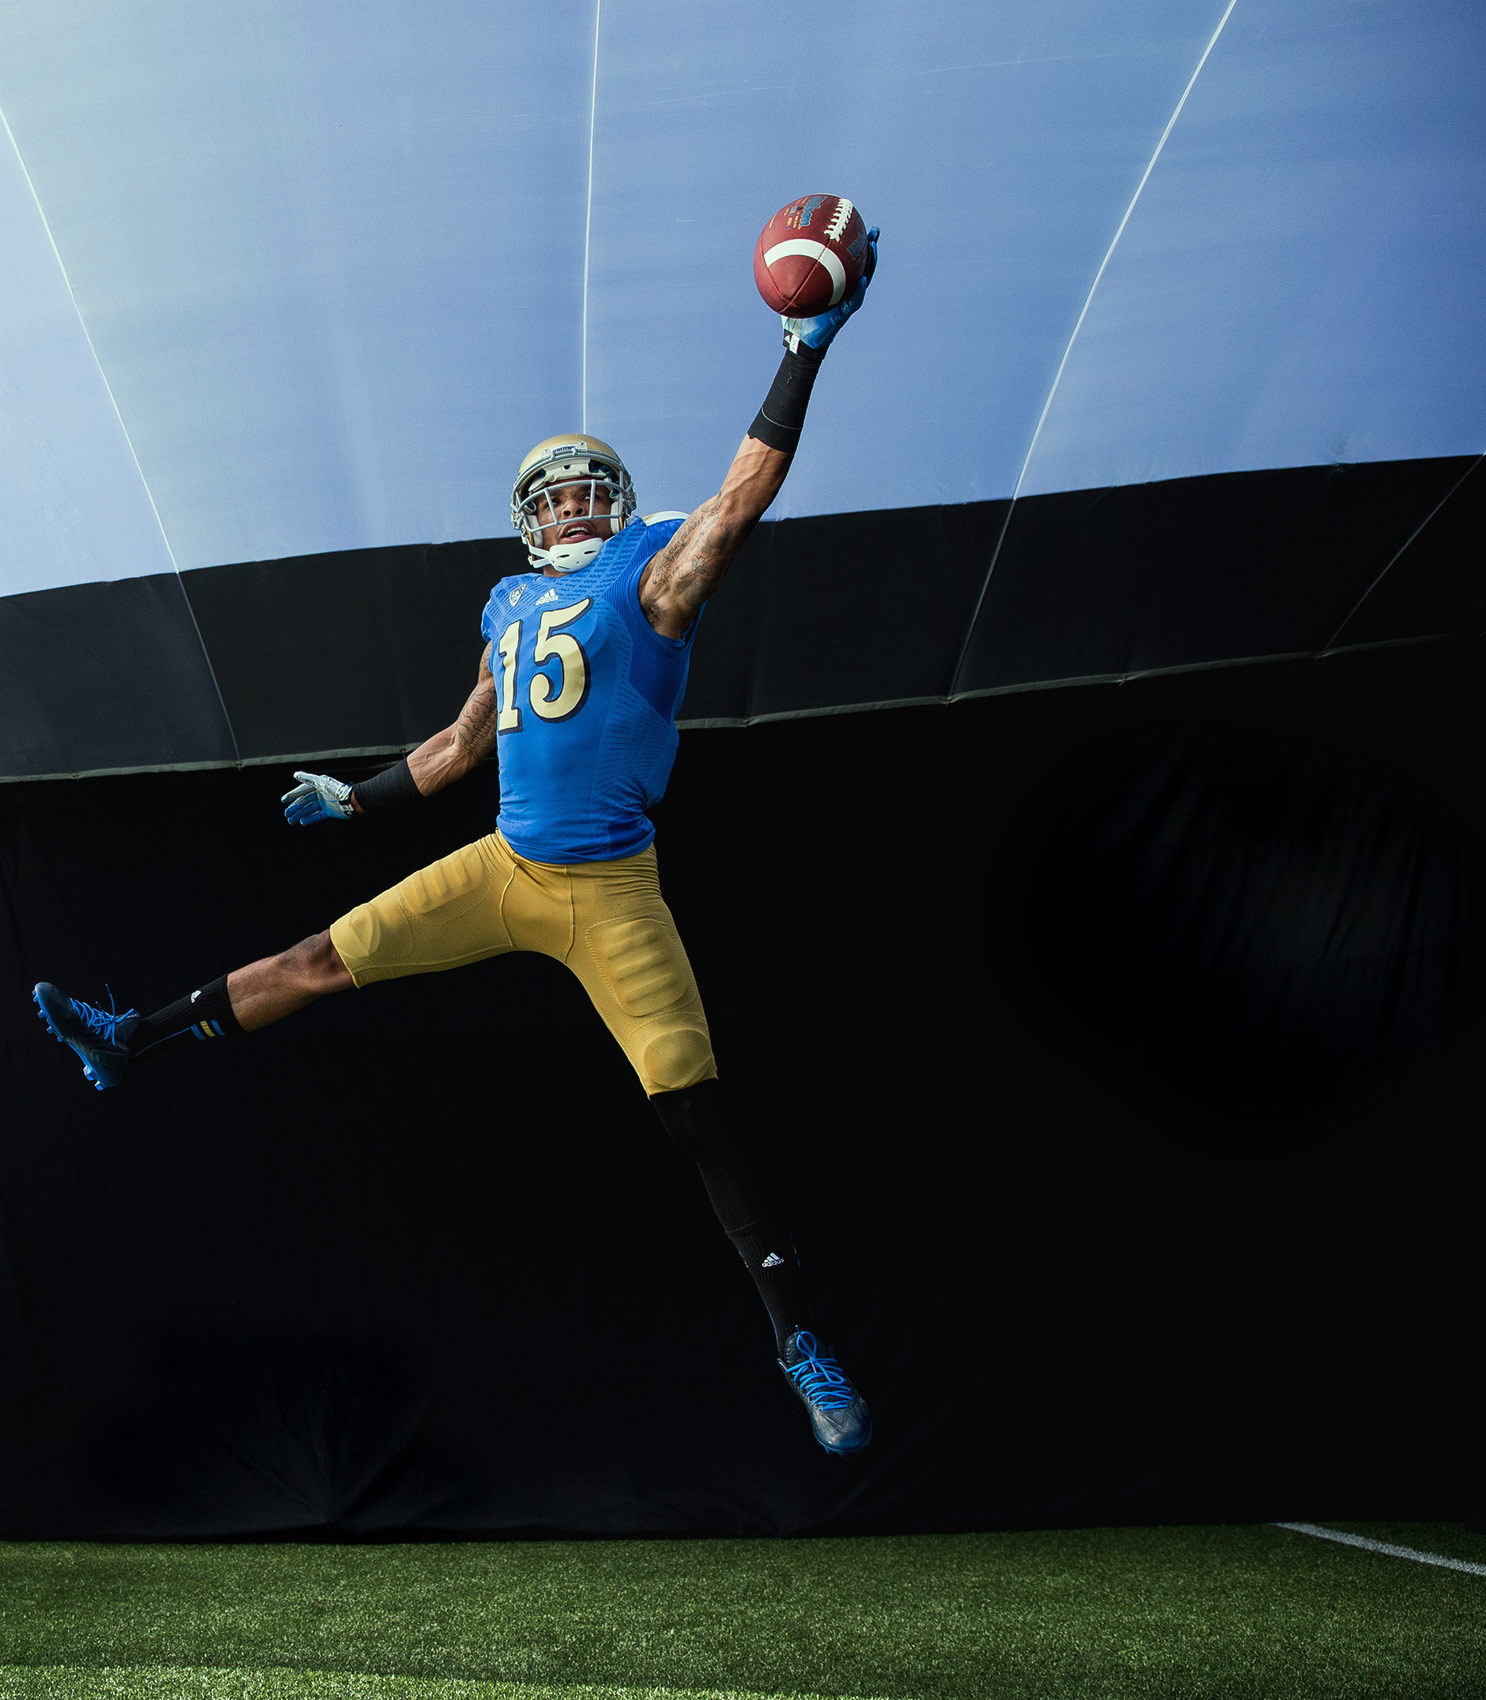 20140514_ucla-football_Lucien_123-web